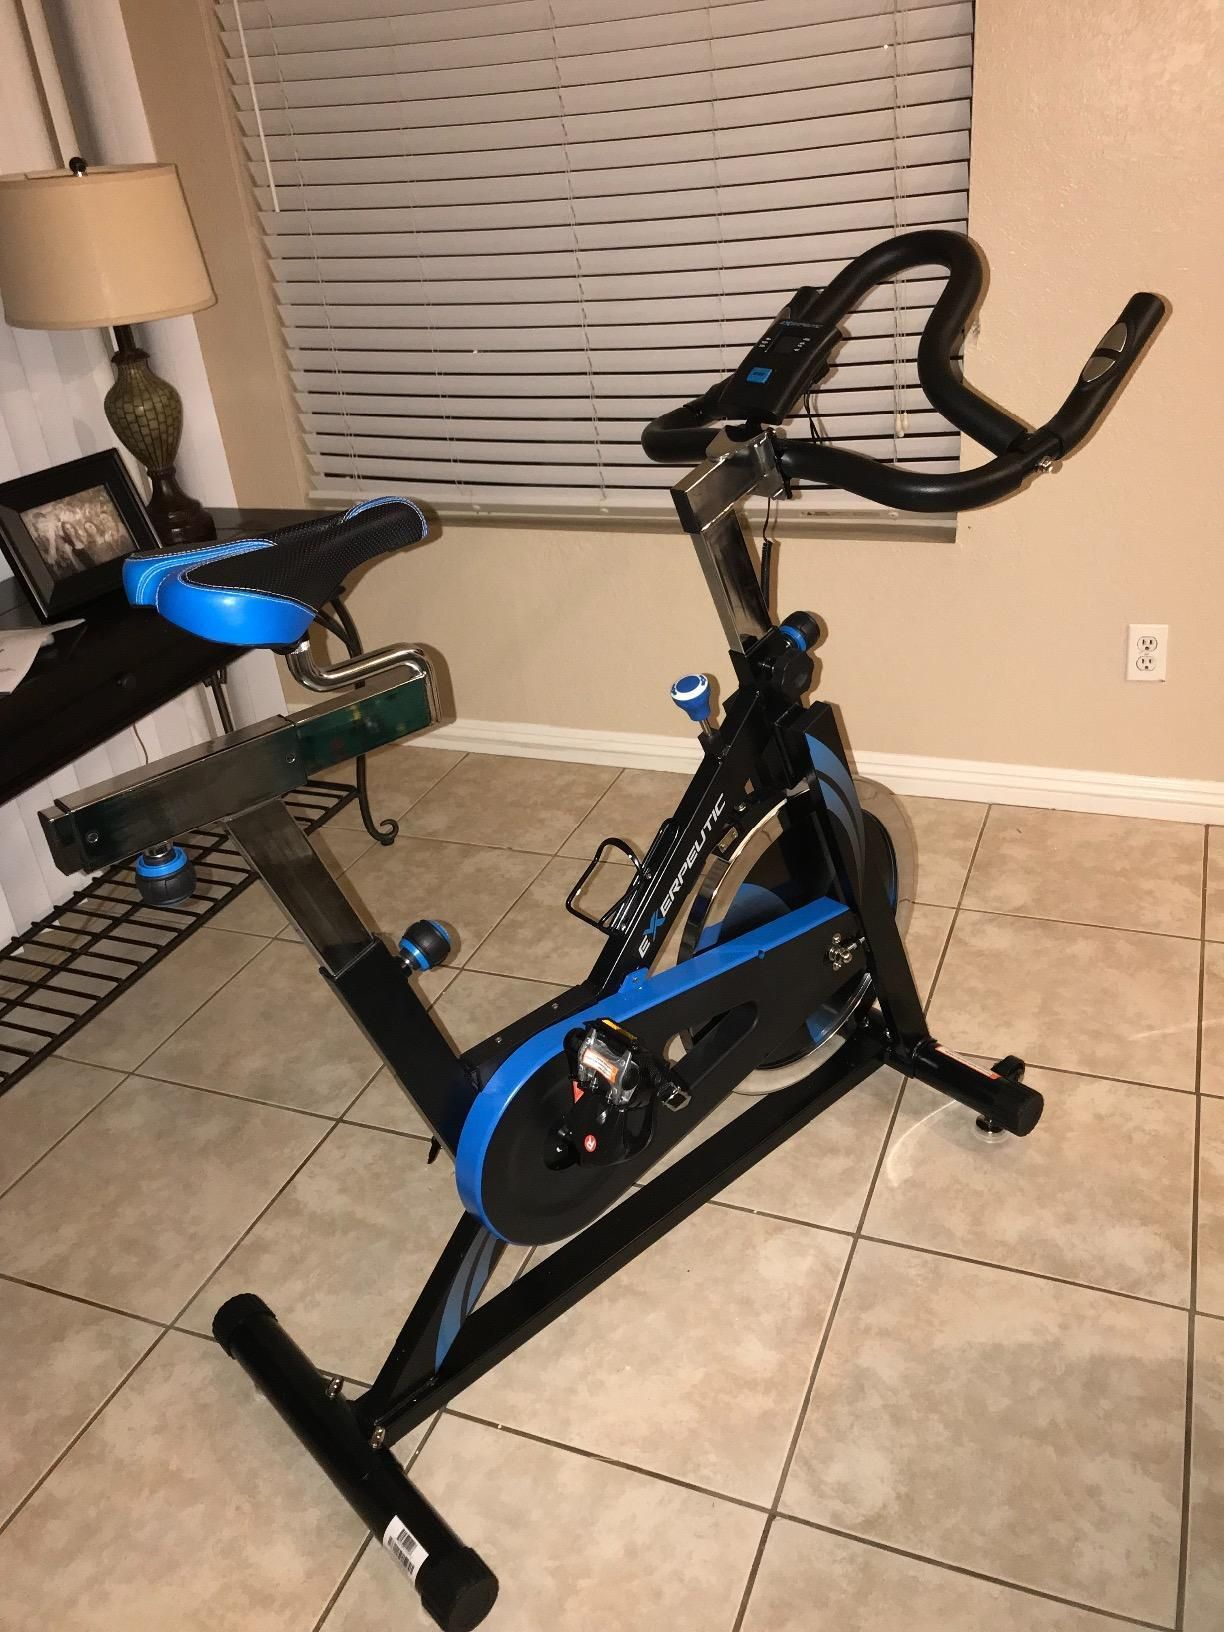 Best Spin Bike Reviews In 2020 Spin Bikes Spin Bike Reviews Bike Reviews